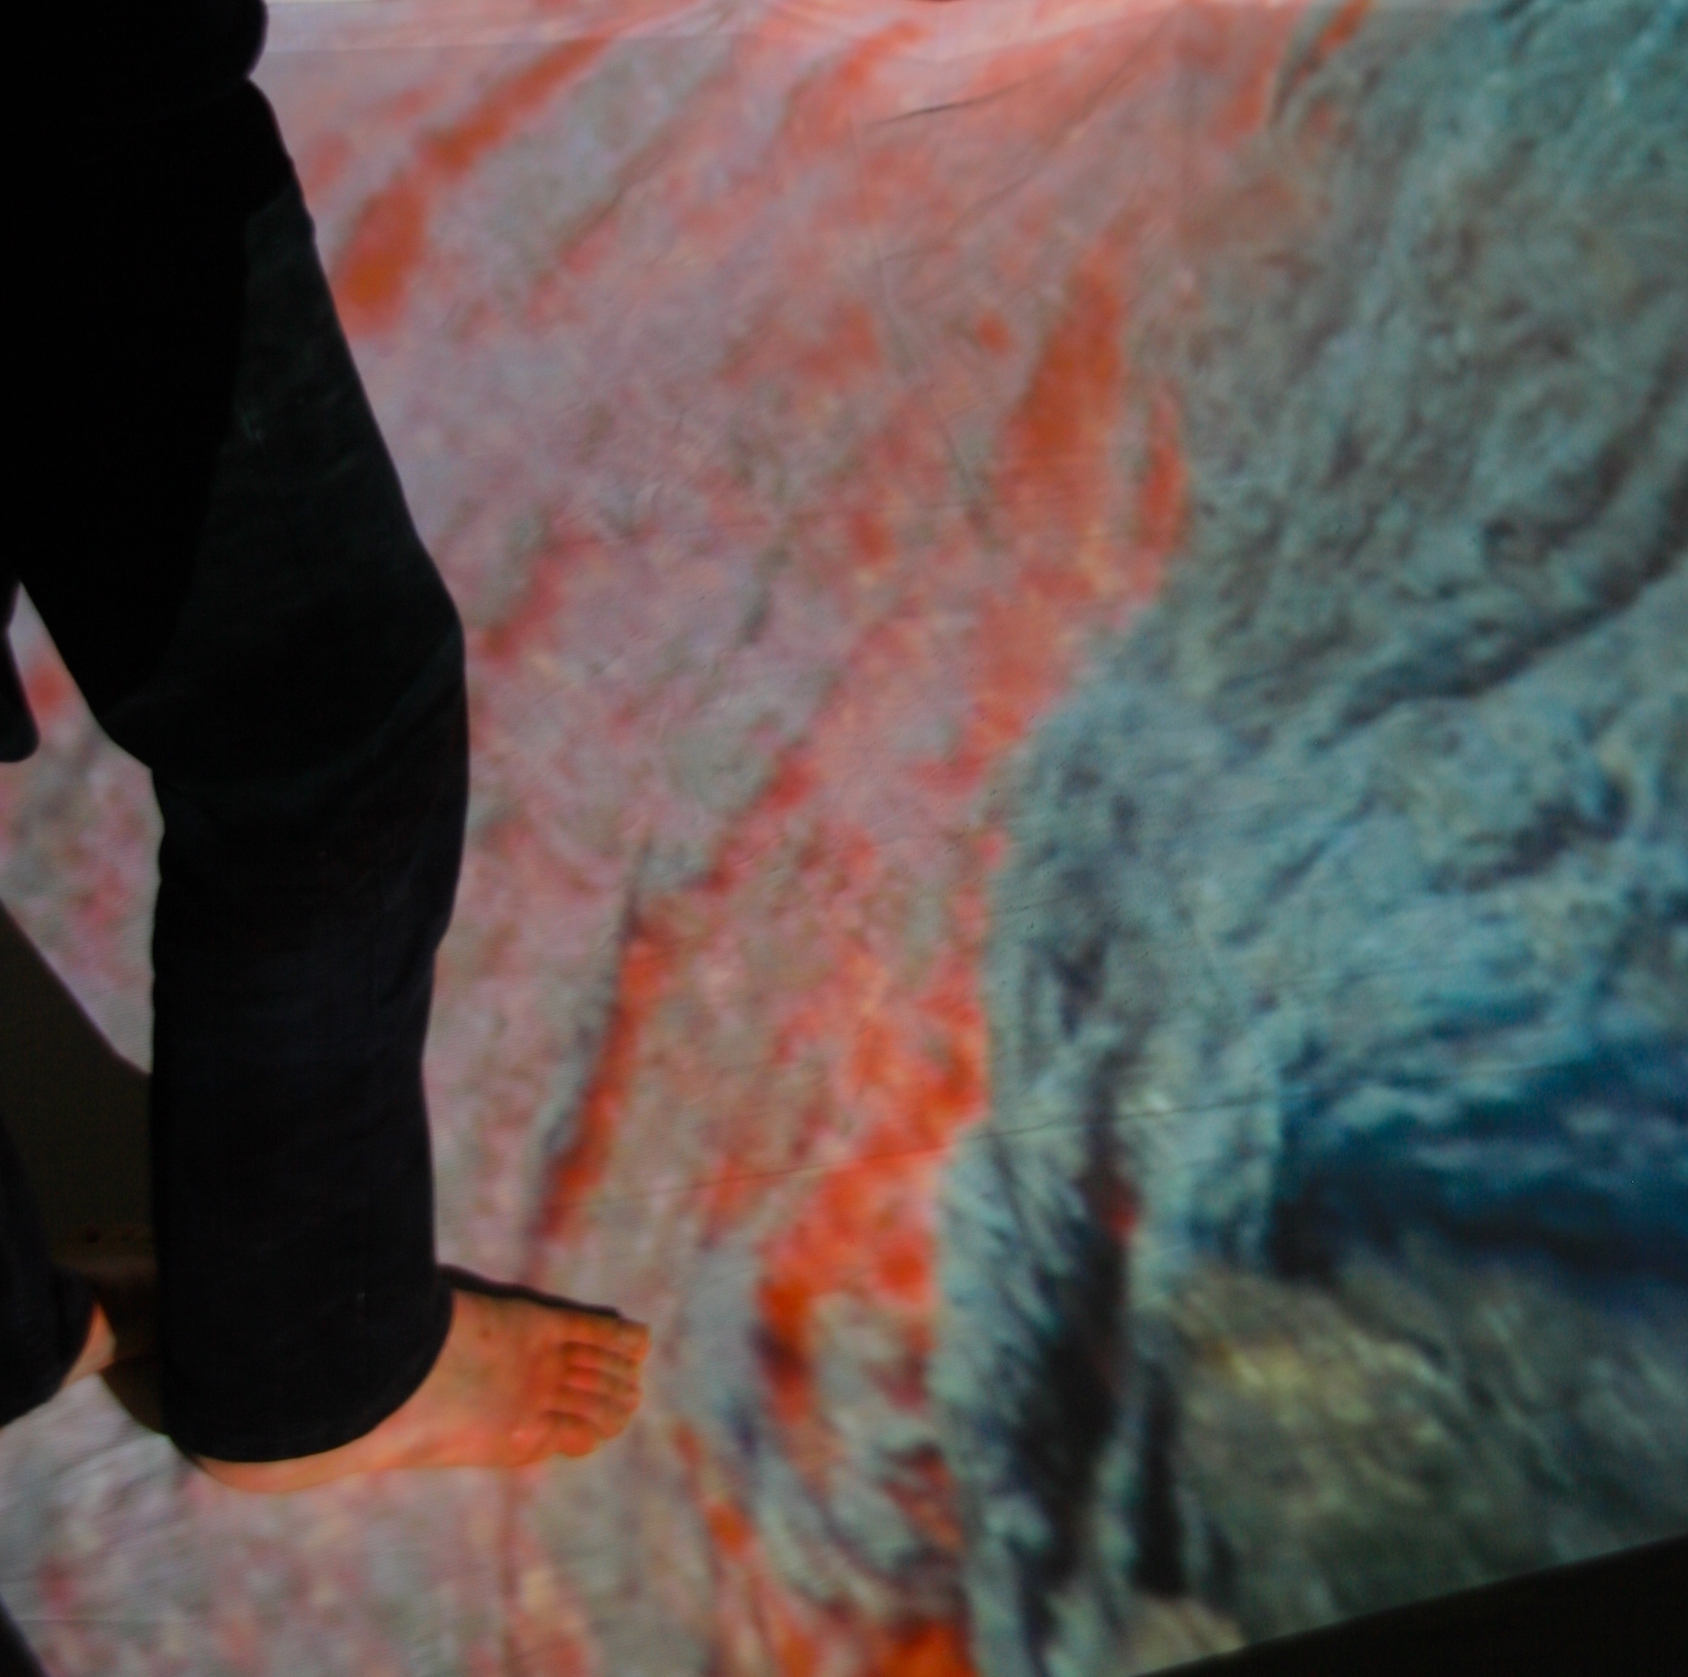 Floor projection of flowing lava, as part of Landmarks and Lifeforms exhibitions.